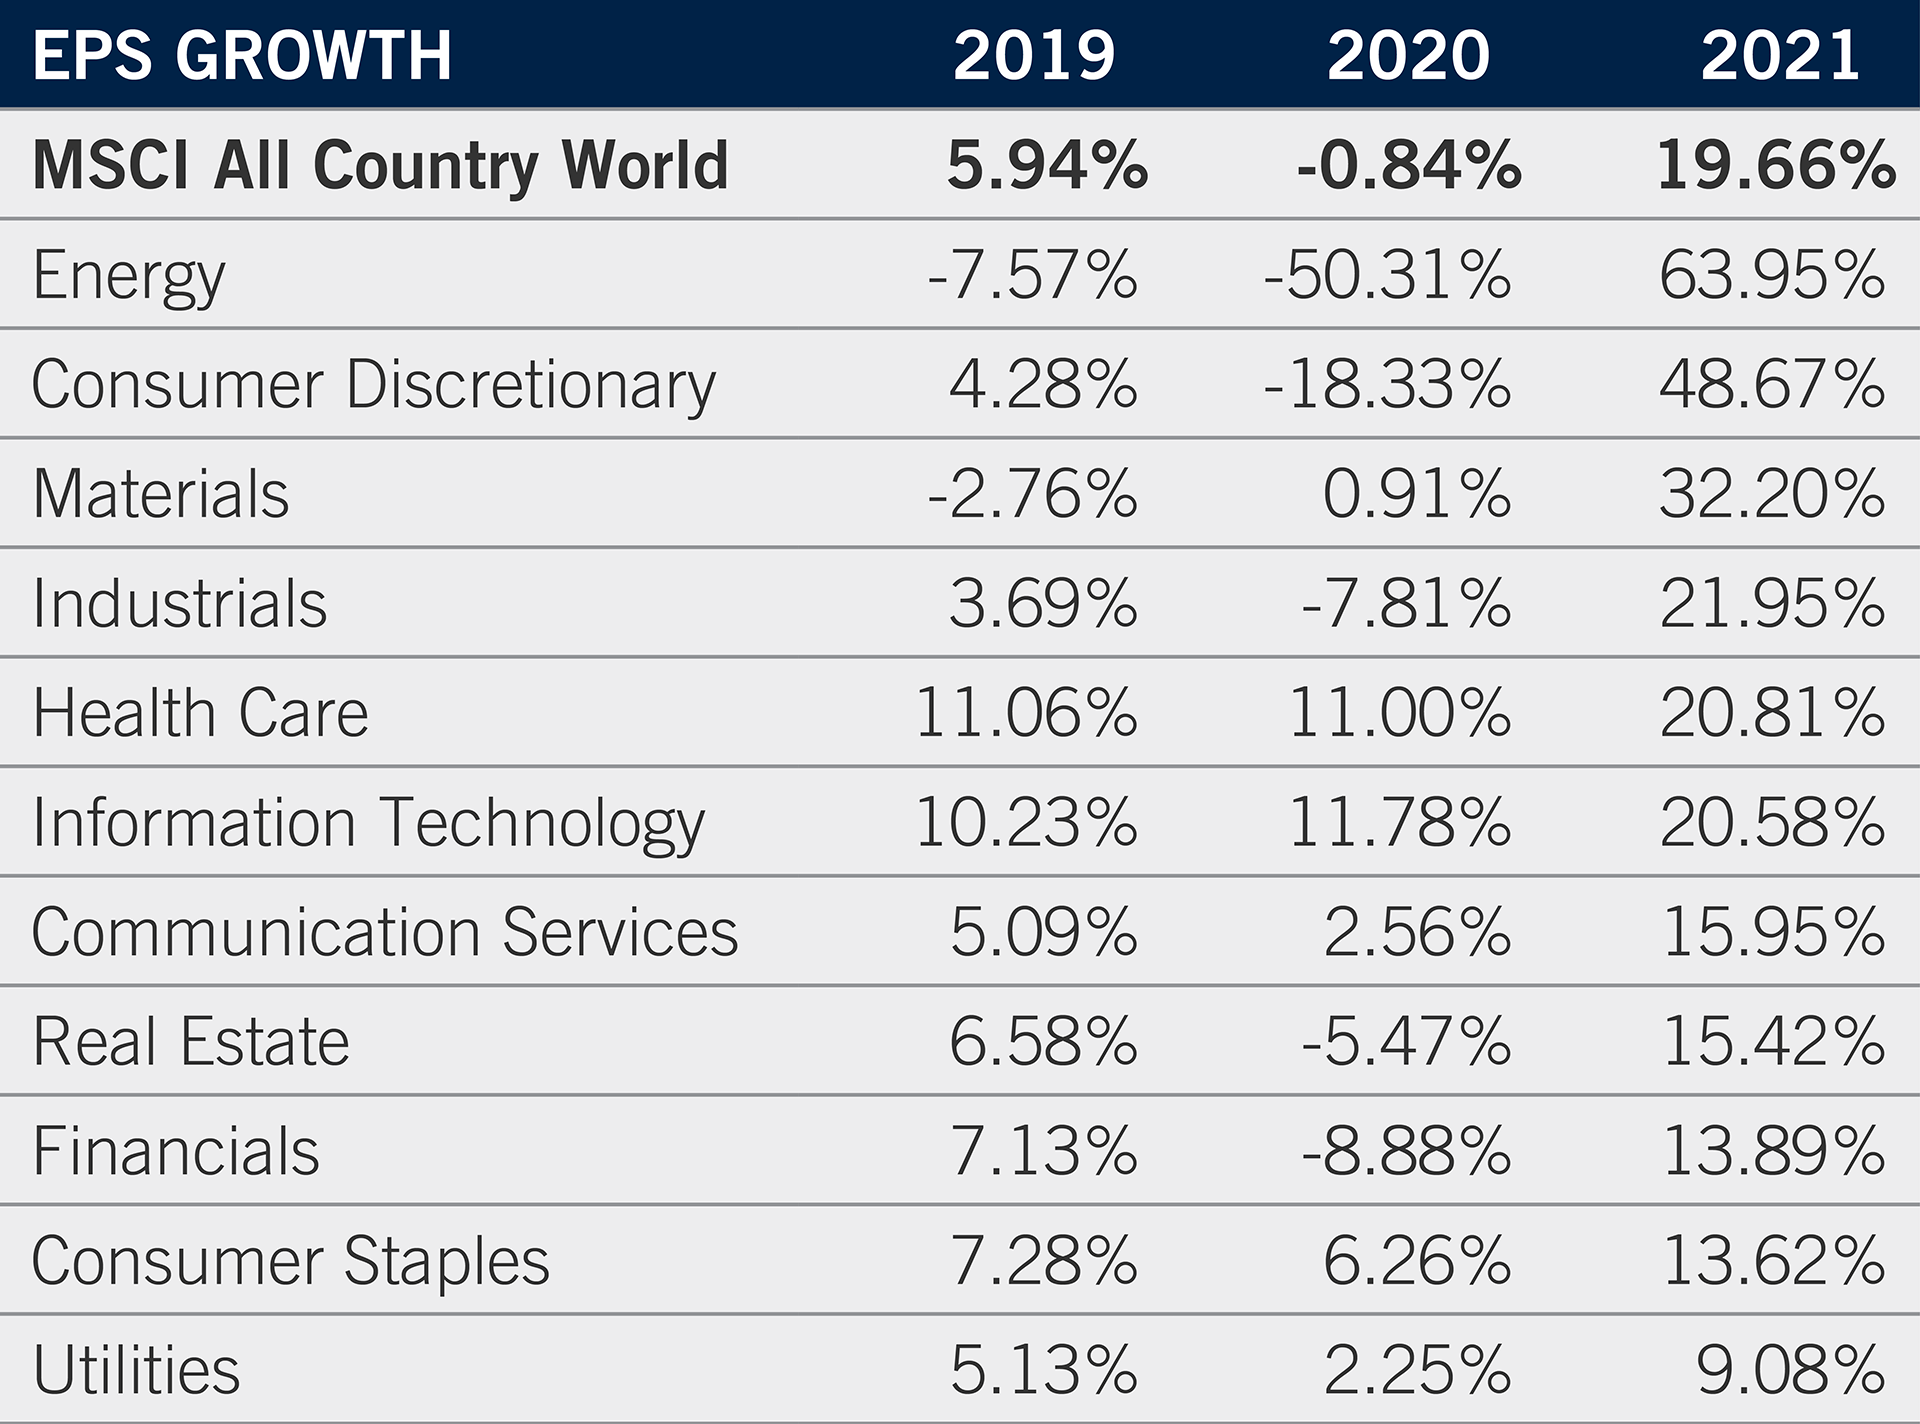 The table shows actual 2019 and estimated 2020 and 2021 EPS growth rates for MSCI ACWI Index sectors.